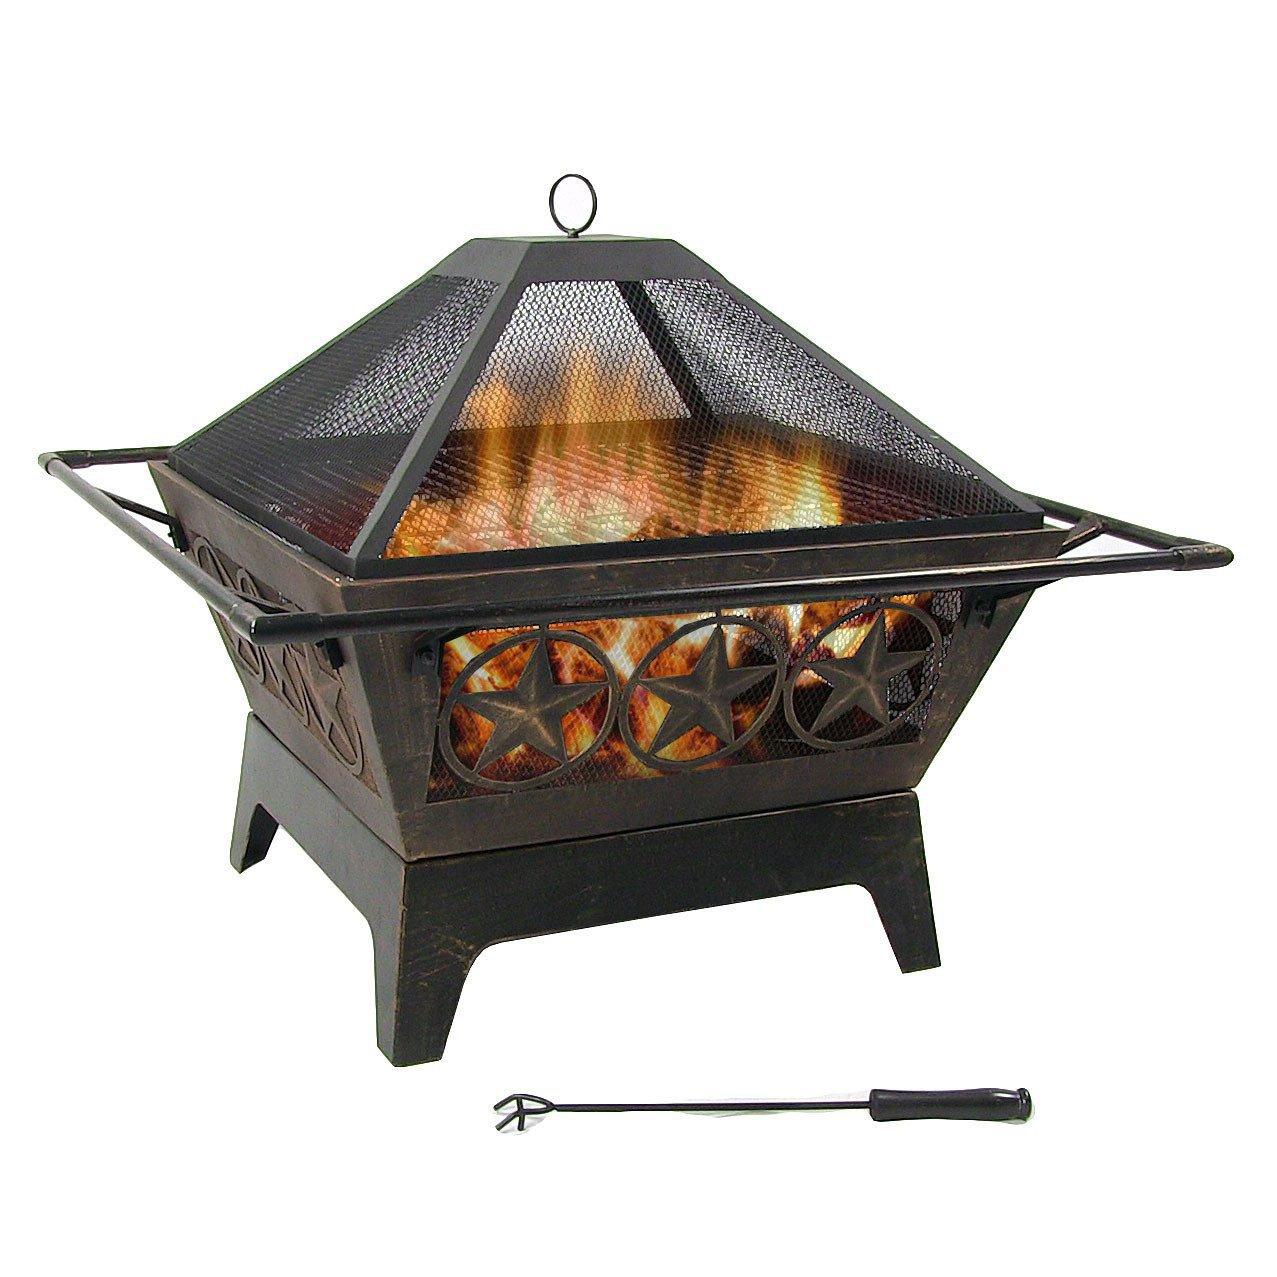 Sunnydaze Northern Galaxy Fire Pit, Large Square Outdoor Wood Burning Patio Firepit with Cooking Grate and Spark Screen, 32 Inch Sunnydaze Decor